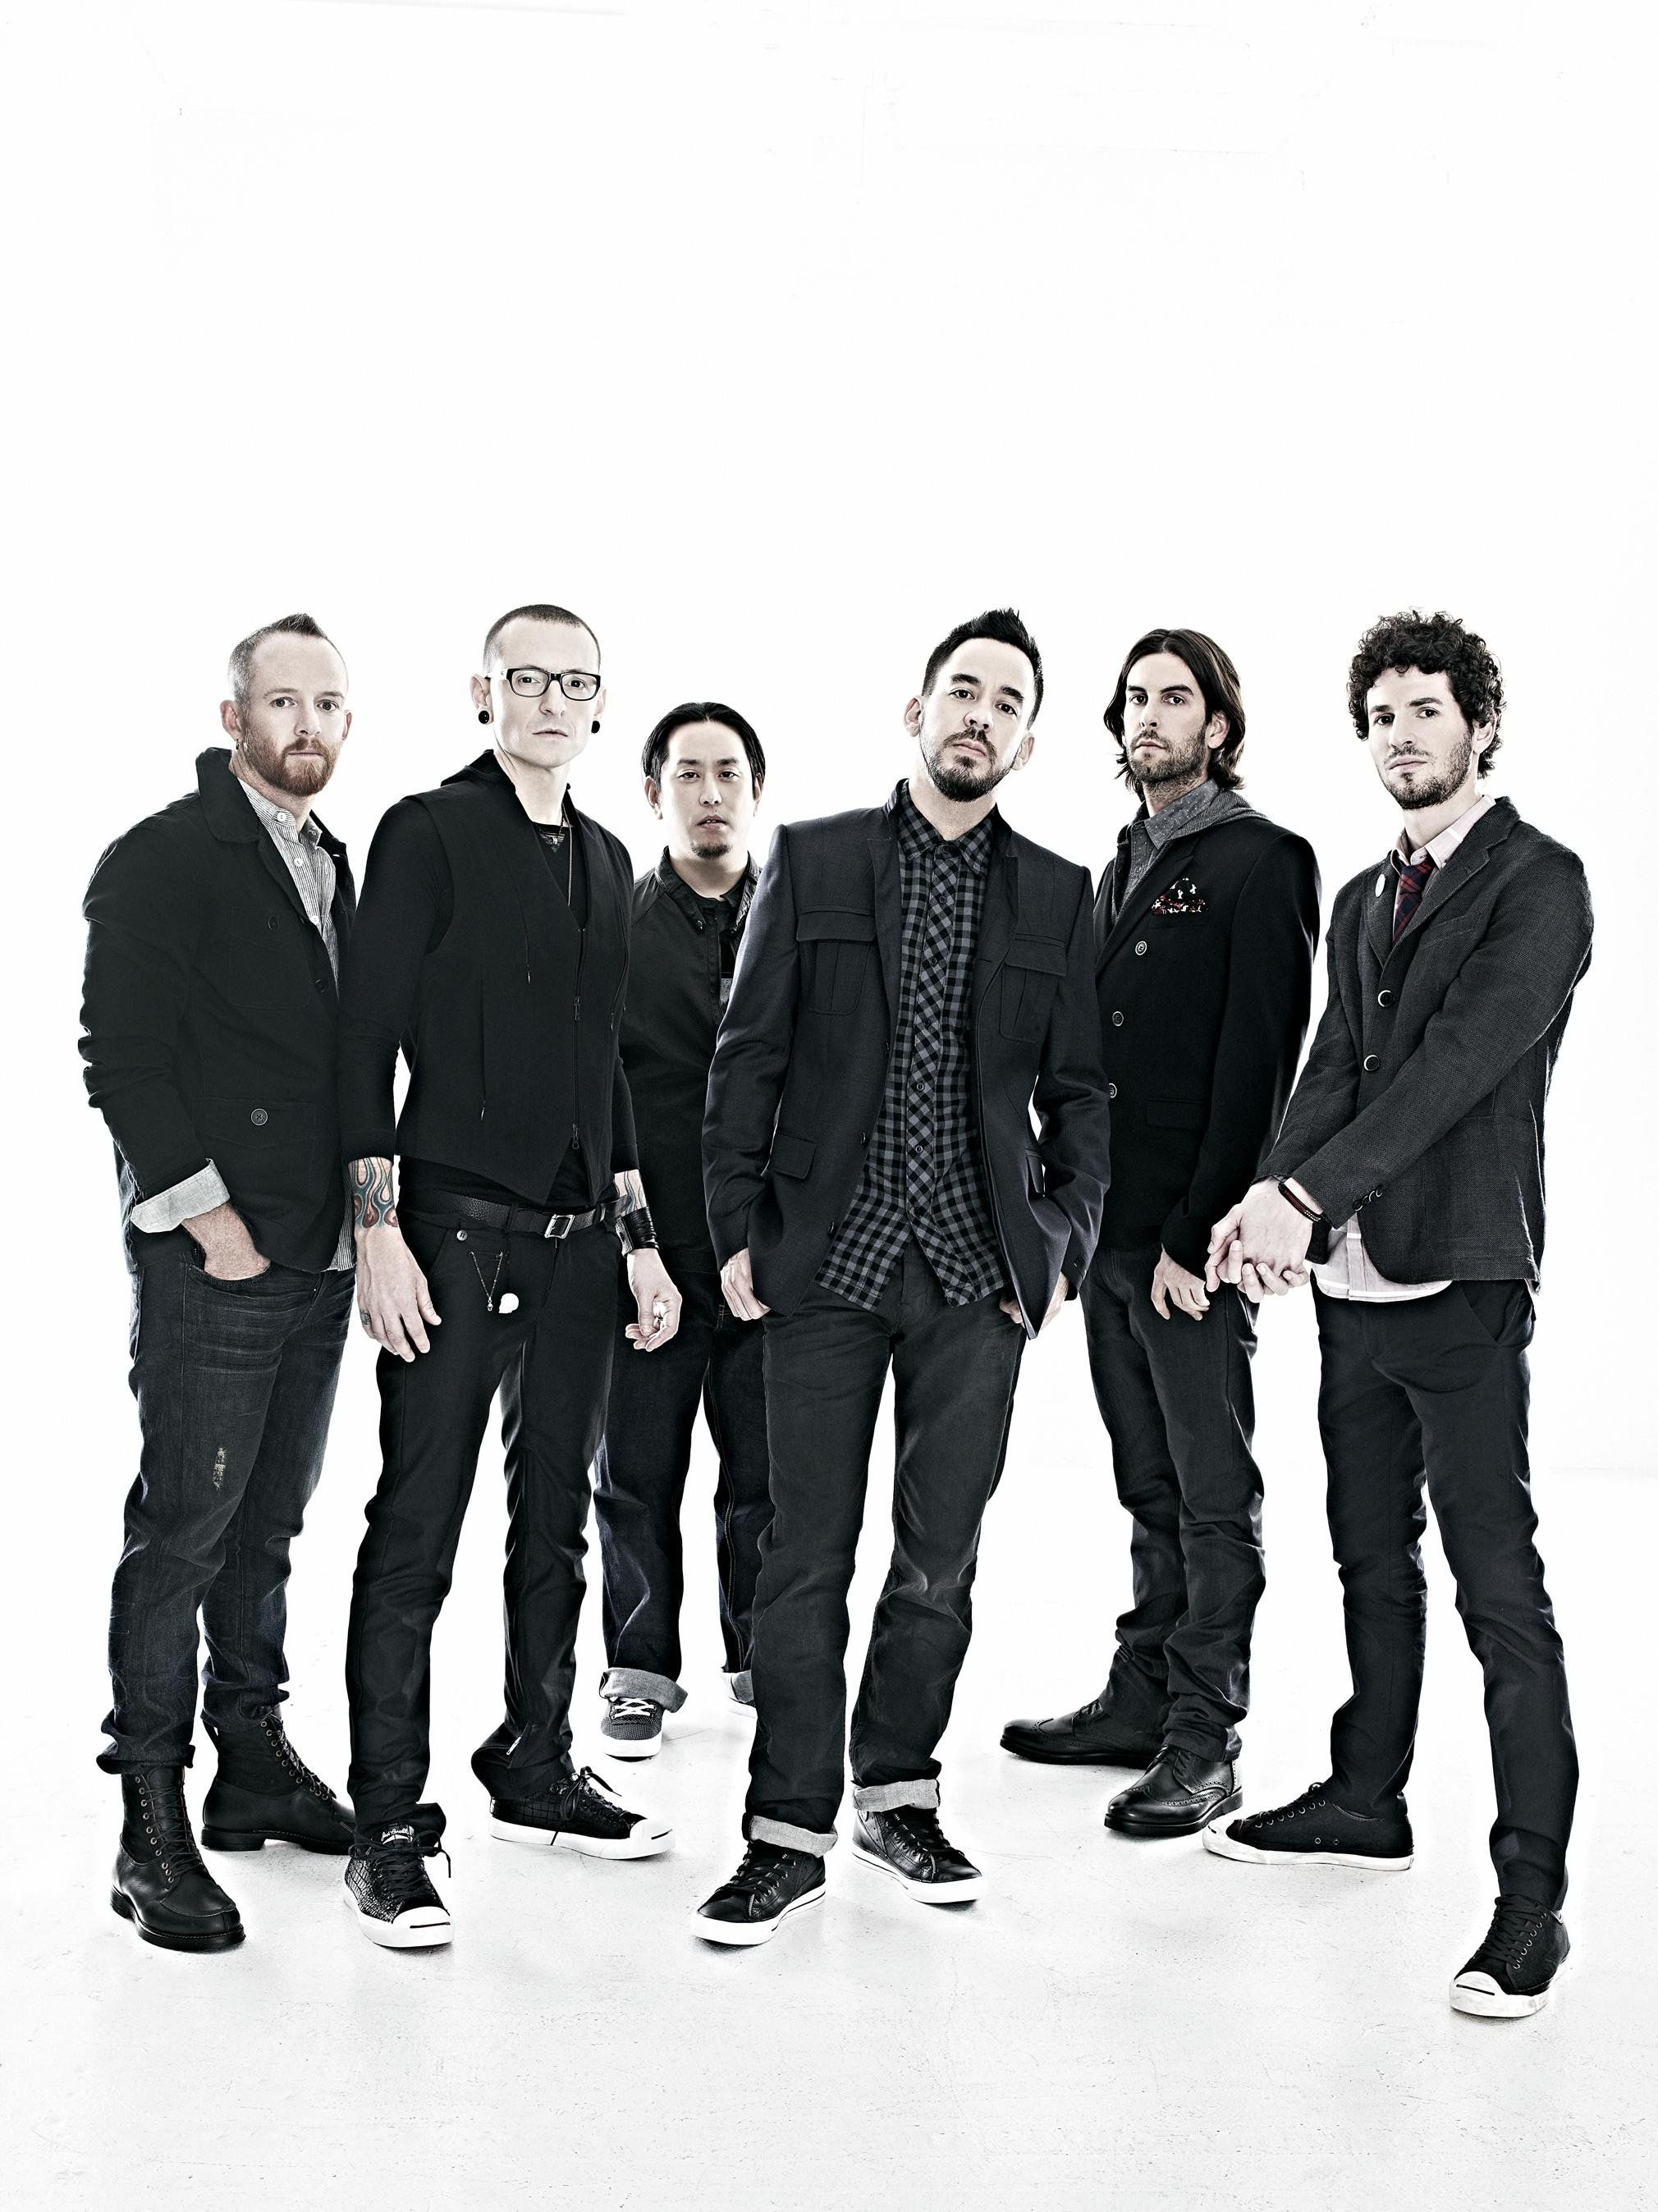 Linkin park linkin park pinterest linkin park and lp linkin park stopboris Image collections